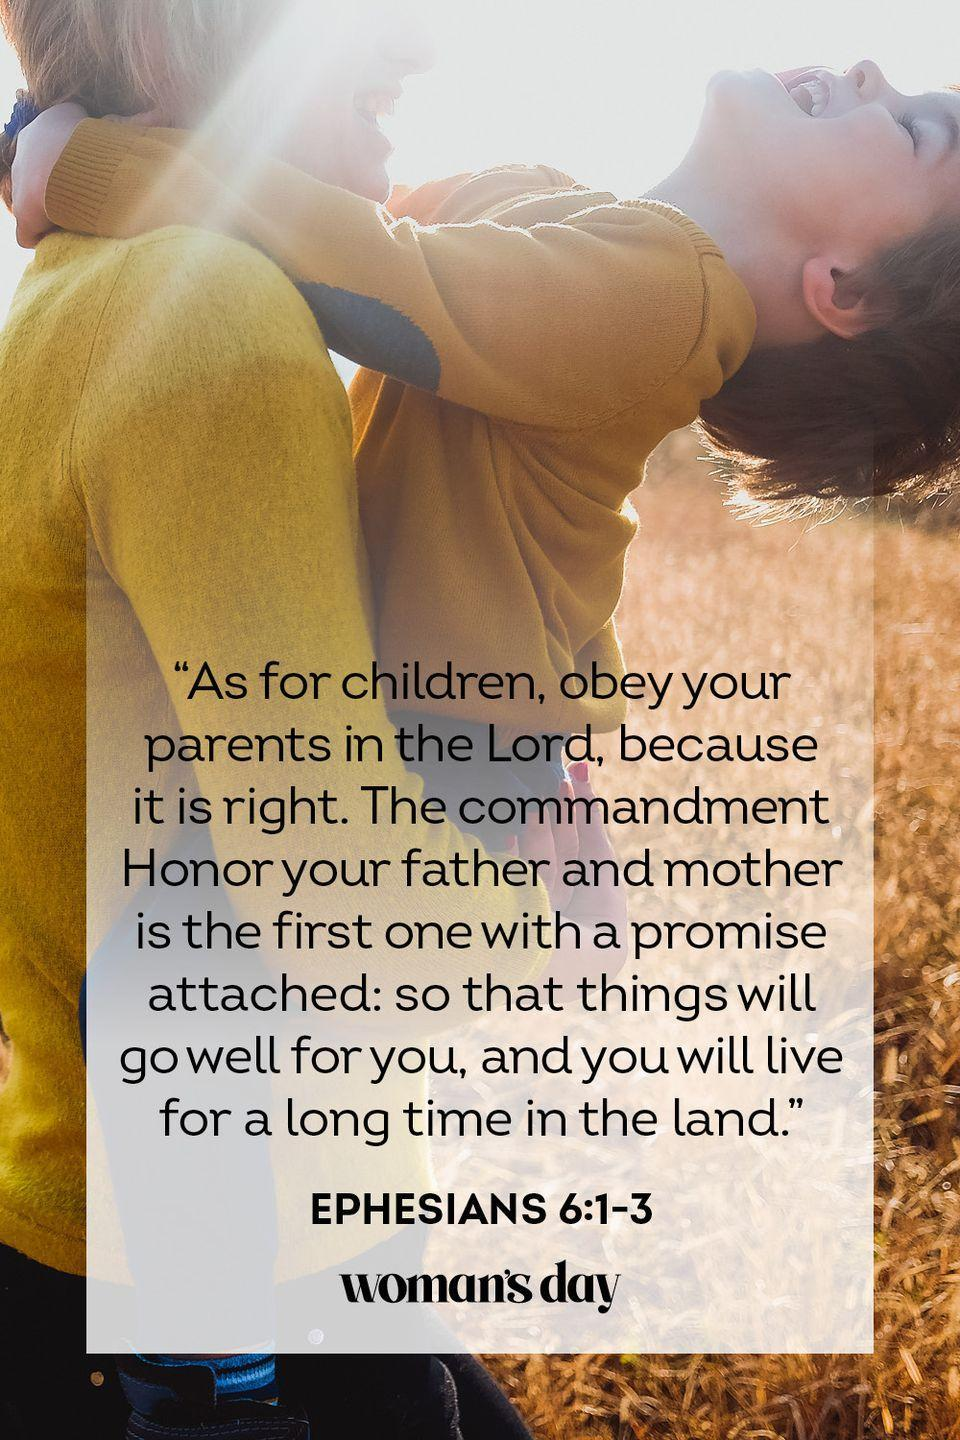 "<p>""As for children, obey your parents in the Lord, because it is right. The commandment Honor your father and mother is the first one with a promise attached: so that things will go well for you, and you will live for a long time in the land.""</p><p><strong>The Good News:</strong> With the wisdom that you inherit from your parents, you will be able to live a thriving life.</p>"